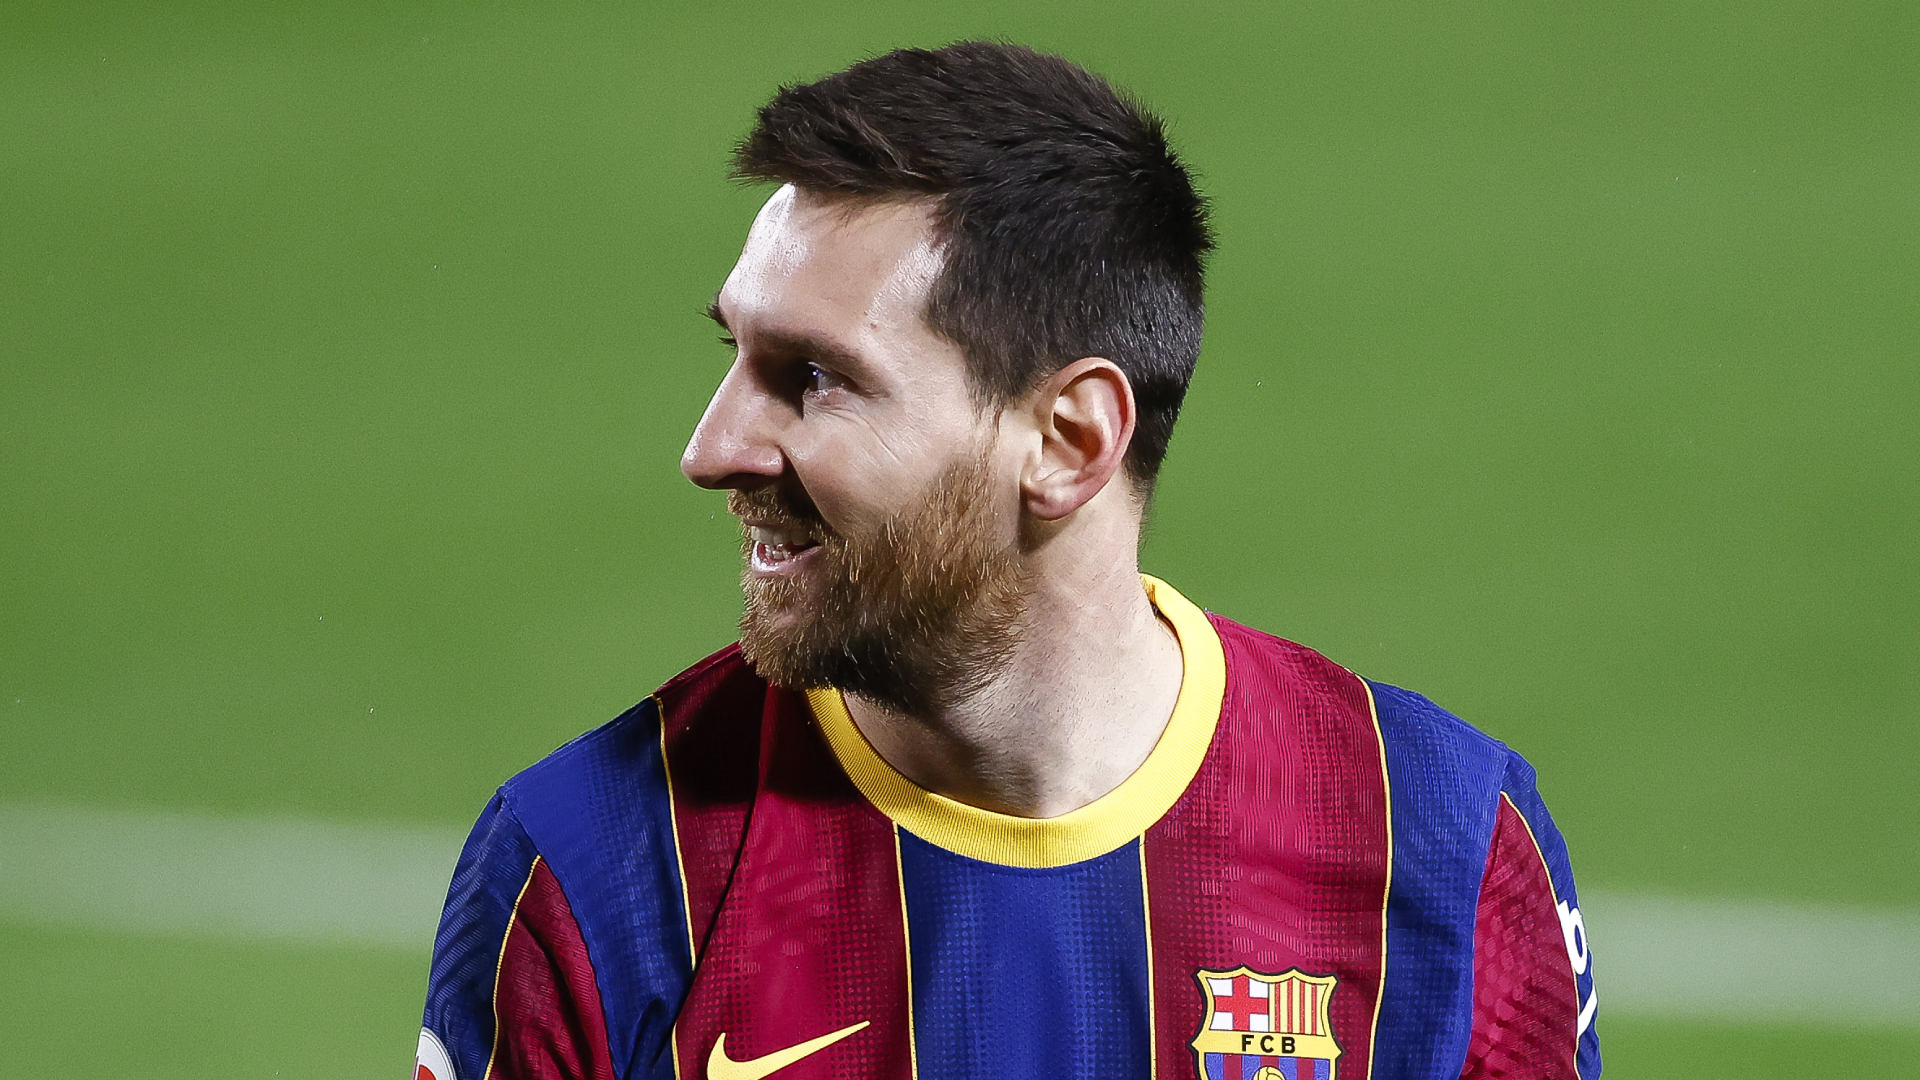 Messi was excused from criticism ahead of Elche win - Koeman